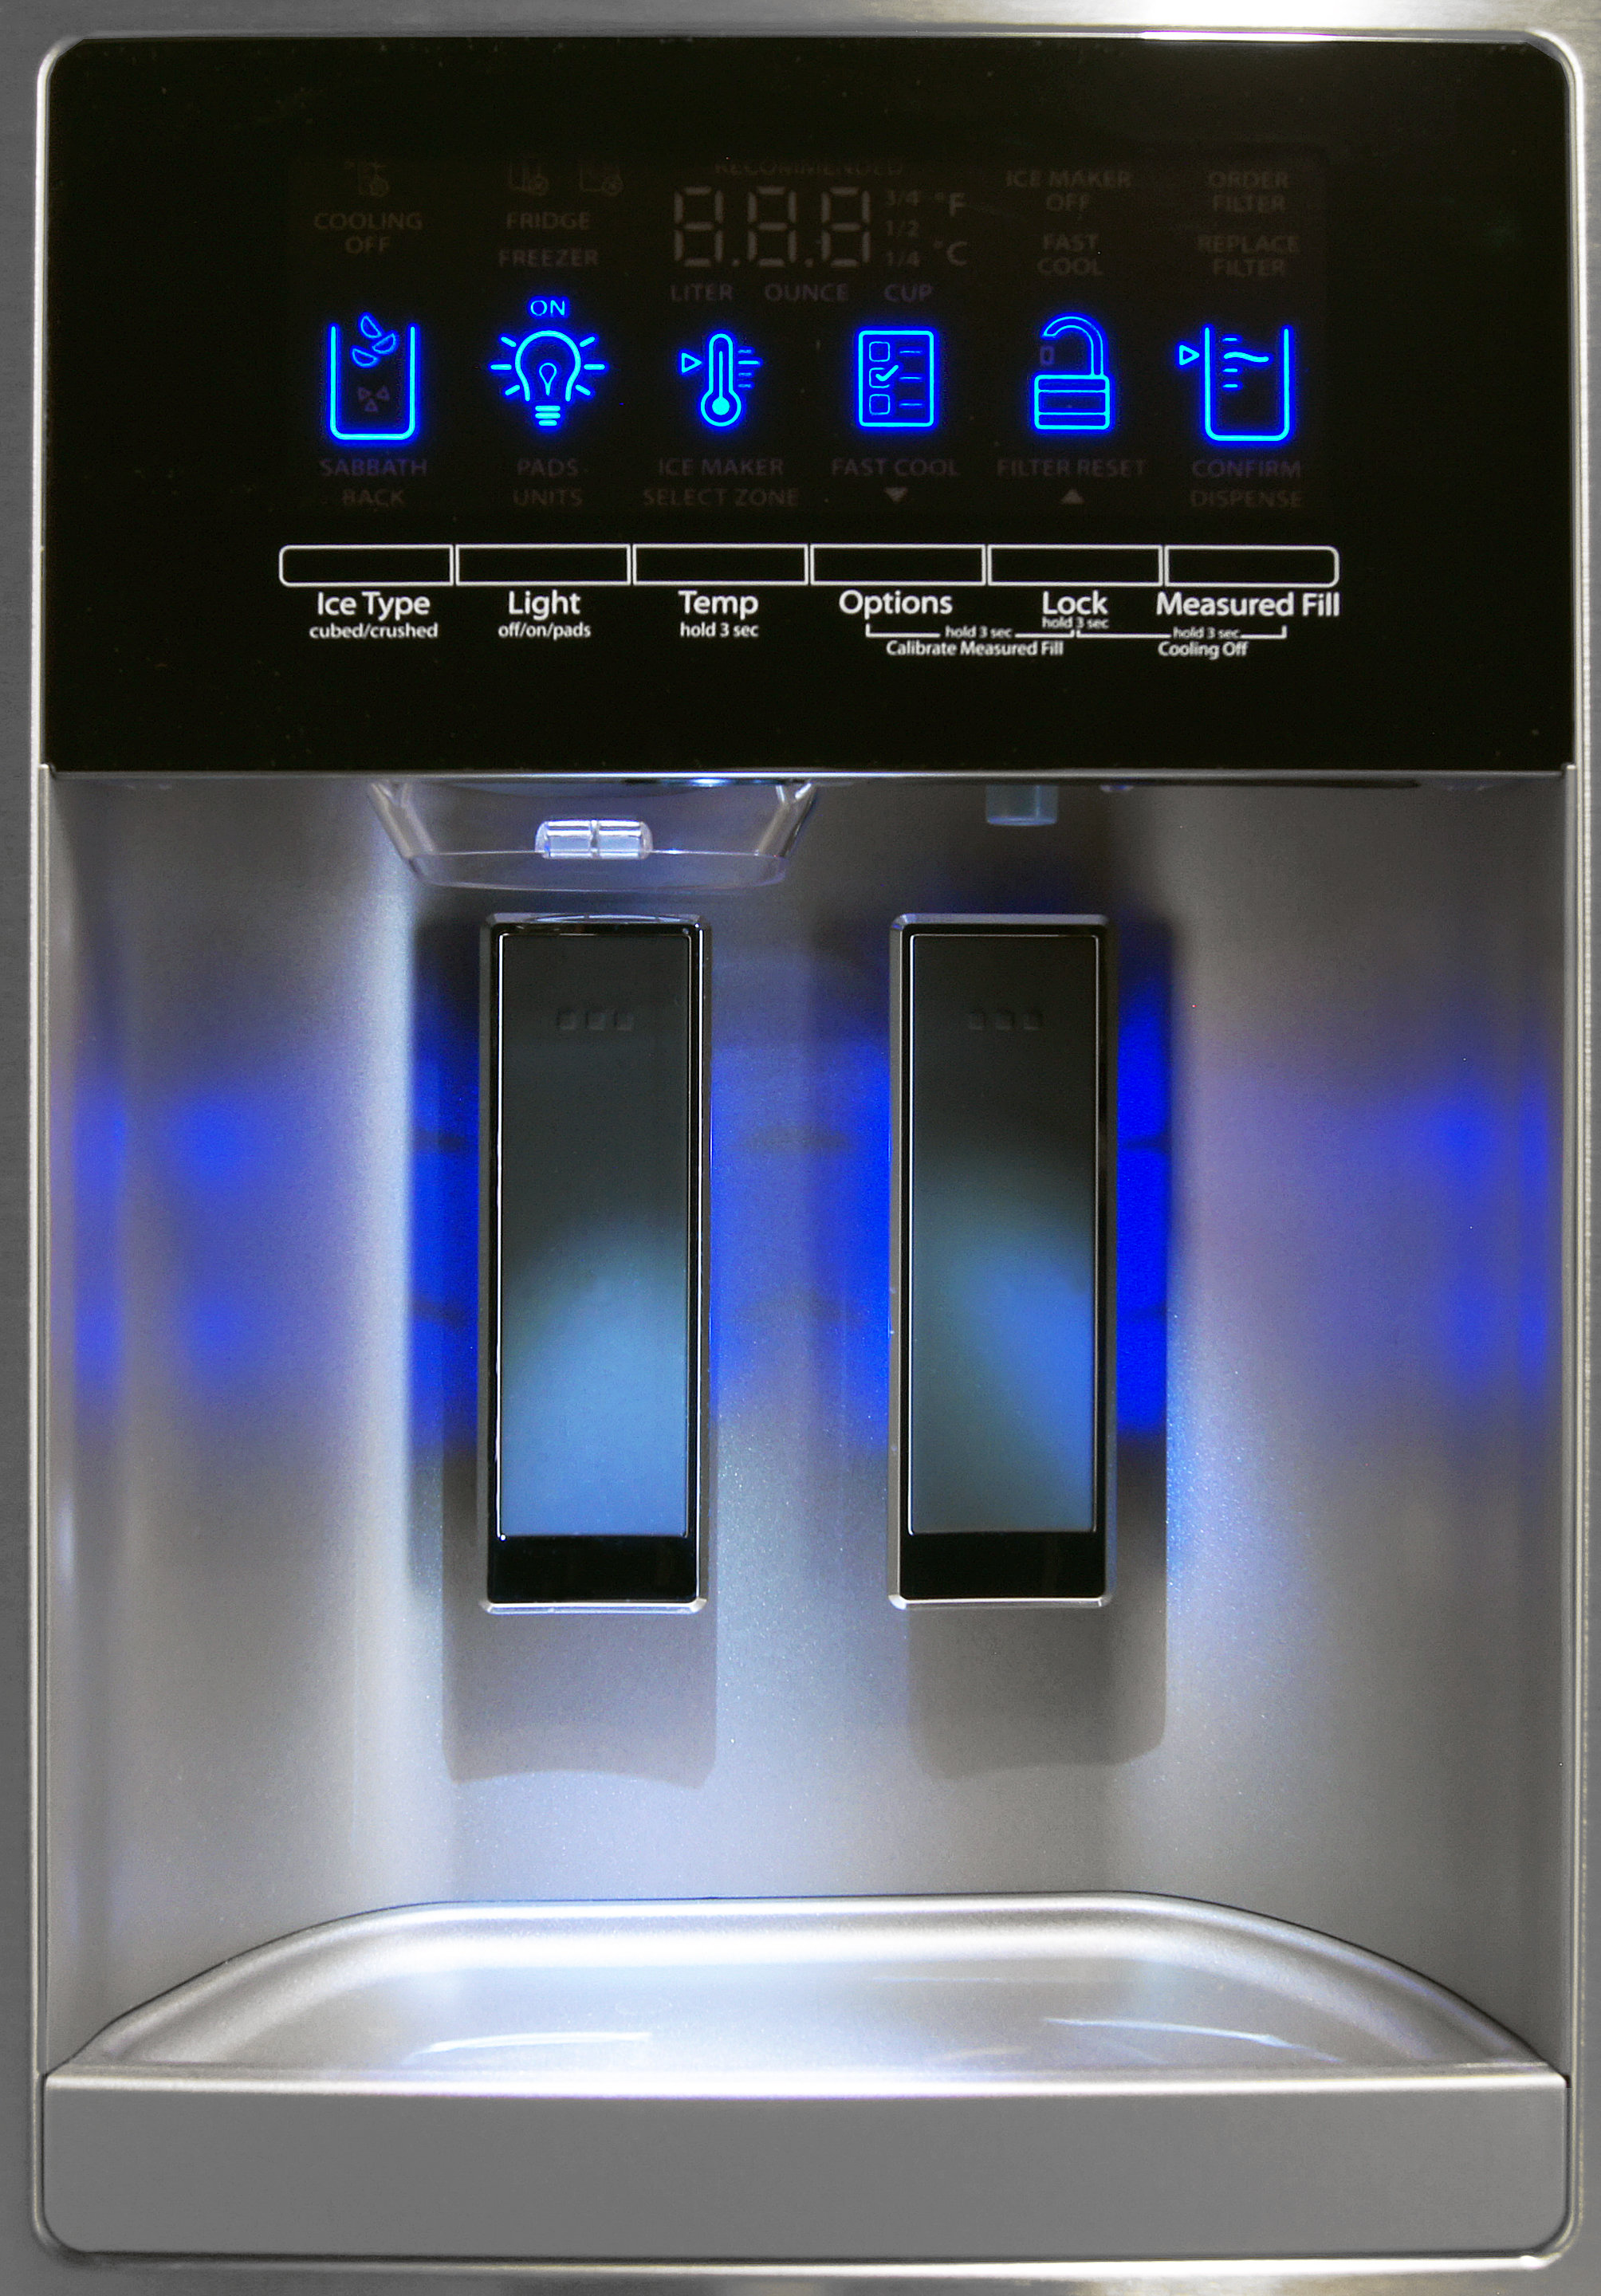 The Whirlpool WRX735SDBM's dual paddle dispenser makes it easy to know what form of water you're getting.